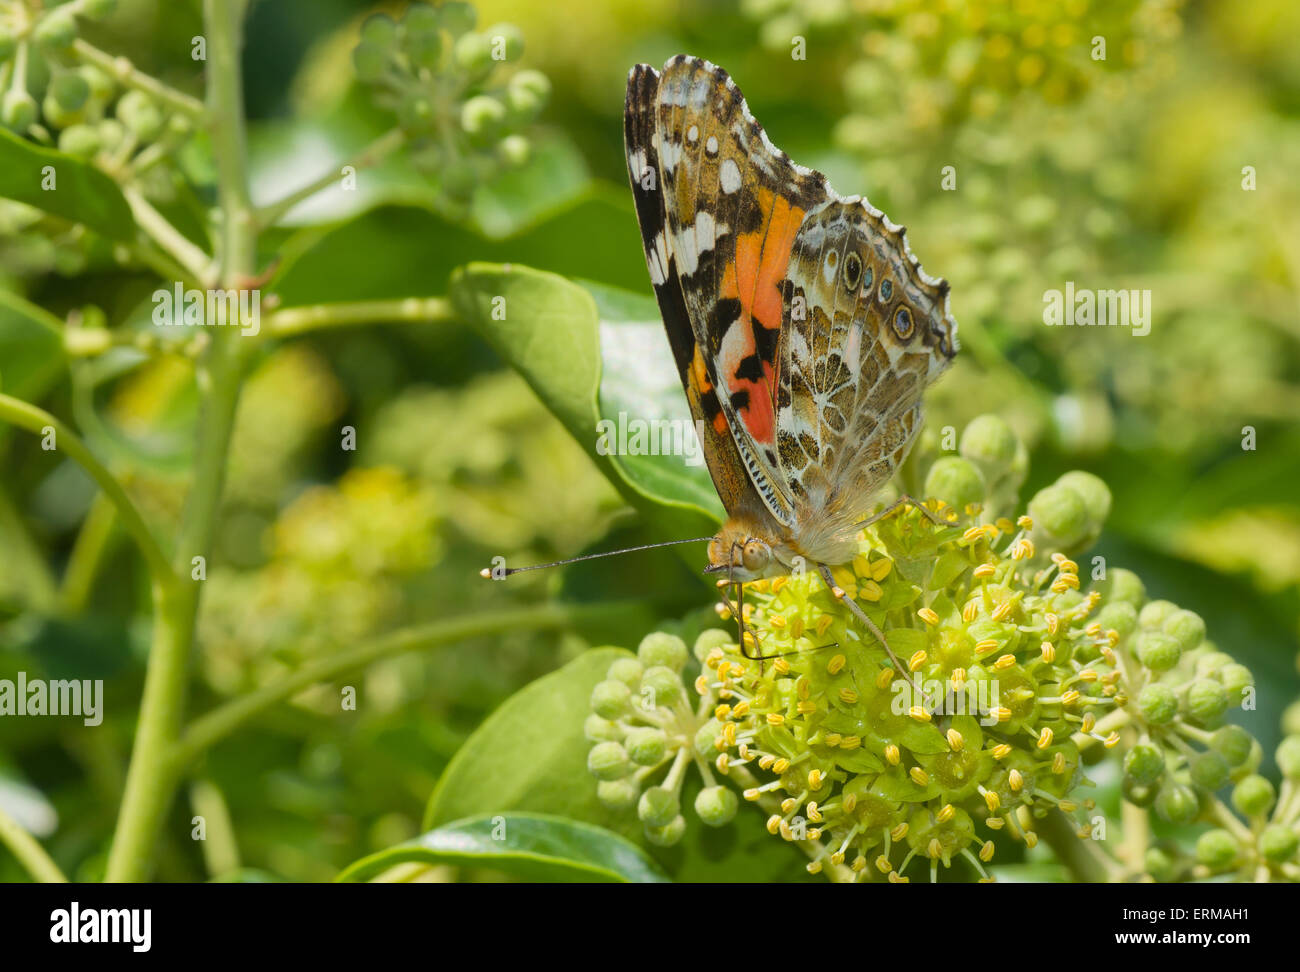 Butterfly sucking nectar from an autumnal flower. - Stock Image